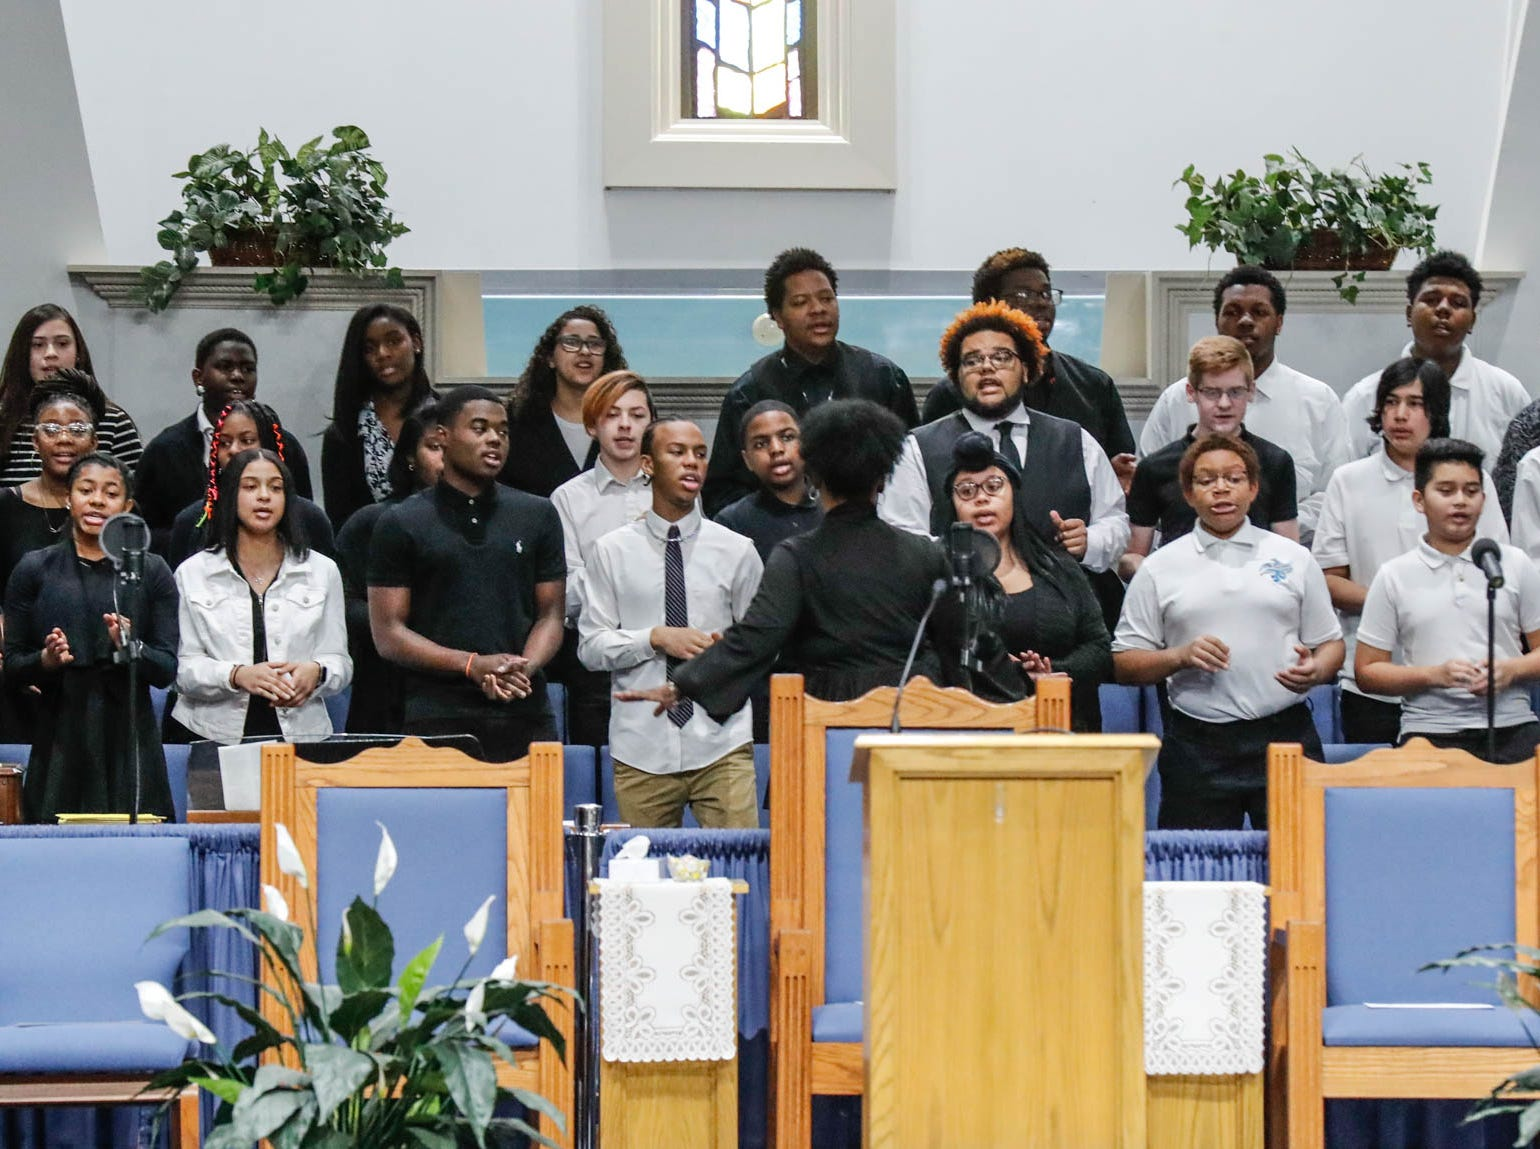 """The Tri-City School Gosphel Choir performs  during the annual Steward Speakers Lecture Series event, held at Olivet Missionary Baptist Church in Indianapolis on Thursday, Feb. 21, 2019. This years theme was """"Year of the woman""""."""